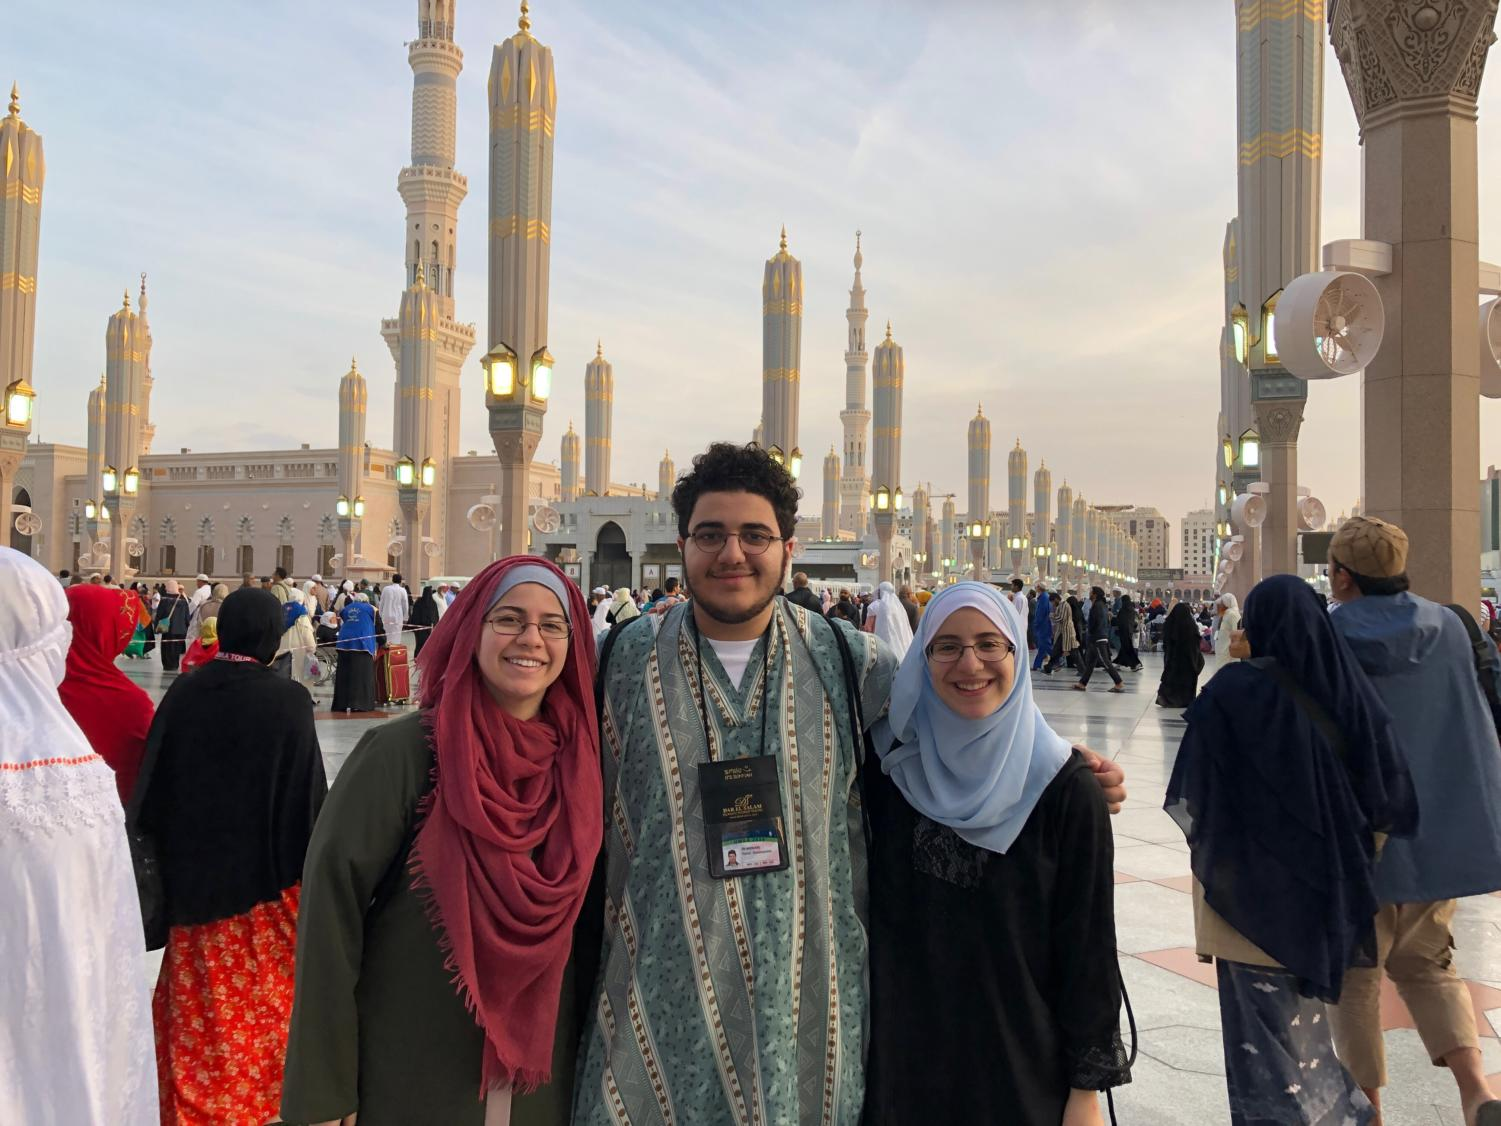 Siblings Syreen, Yusuf and Nour Goulmamine visit Masjid Al-Nabawi, one of the oldest mosques in Muslim history.